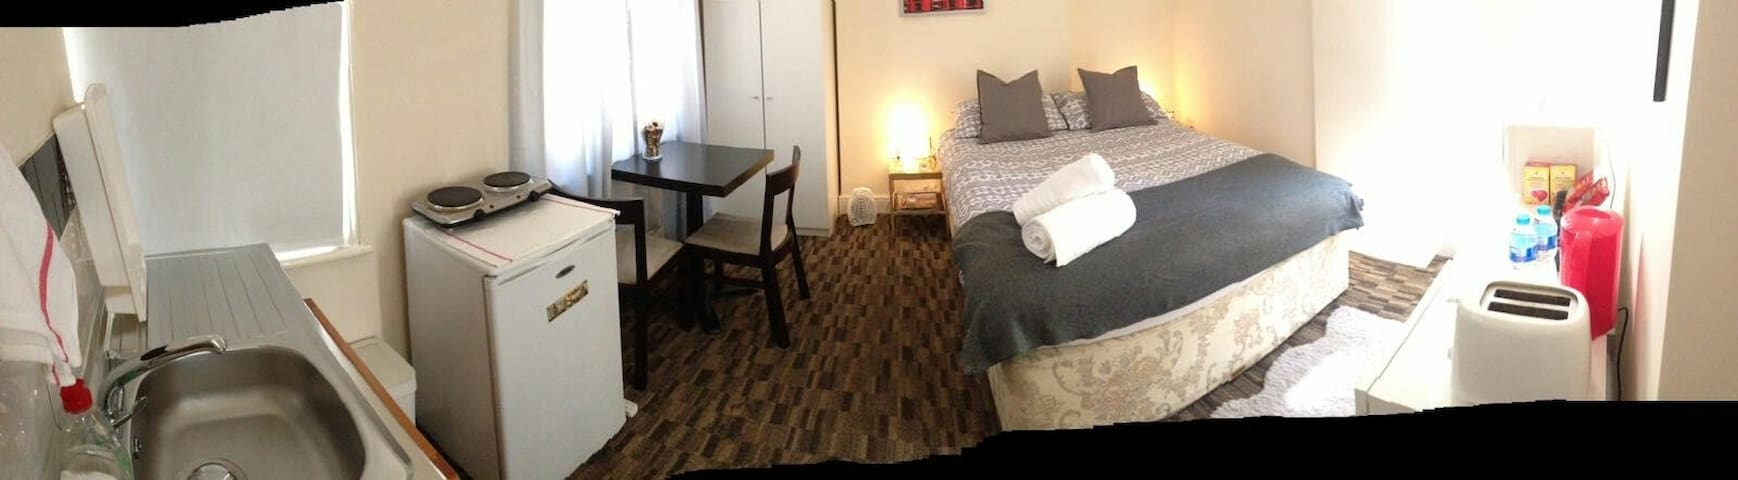 Entire suite flat near Paddington Station - Londen - Appartement